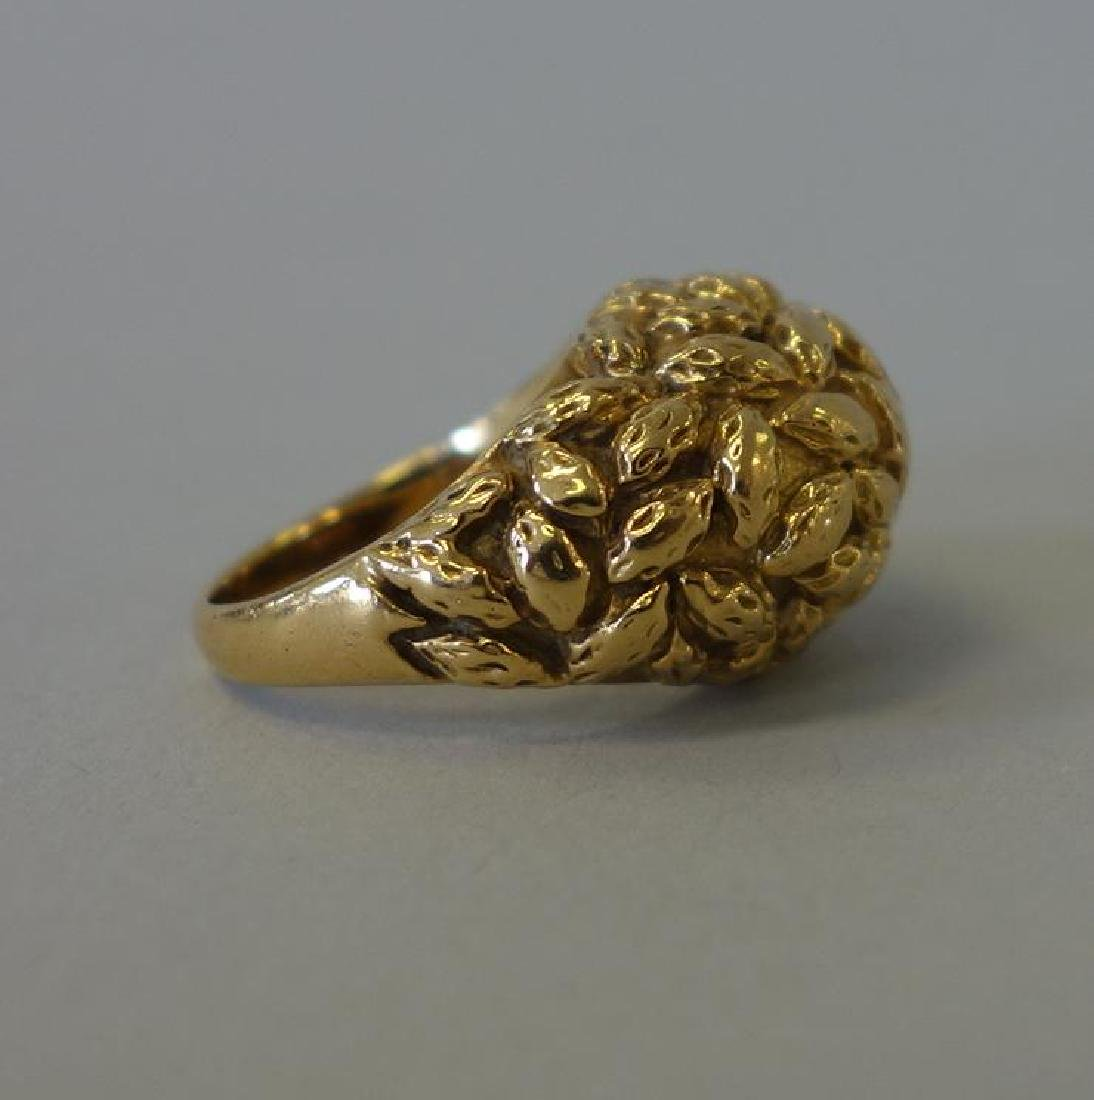 Van Cleef & Arpels 18K Gold Ring - 2